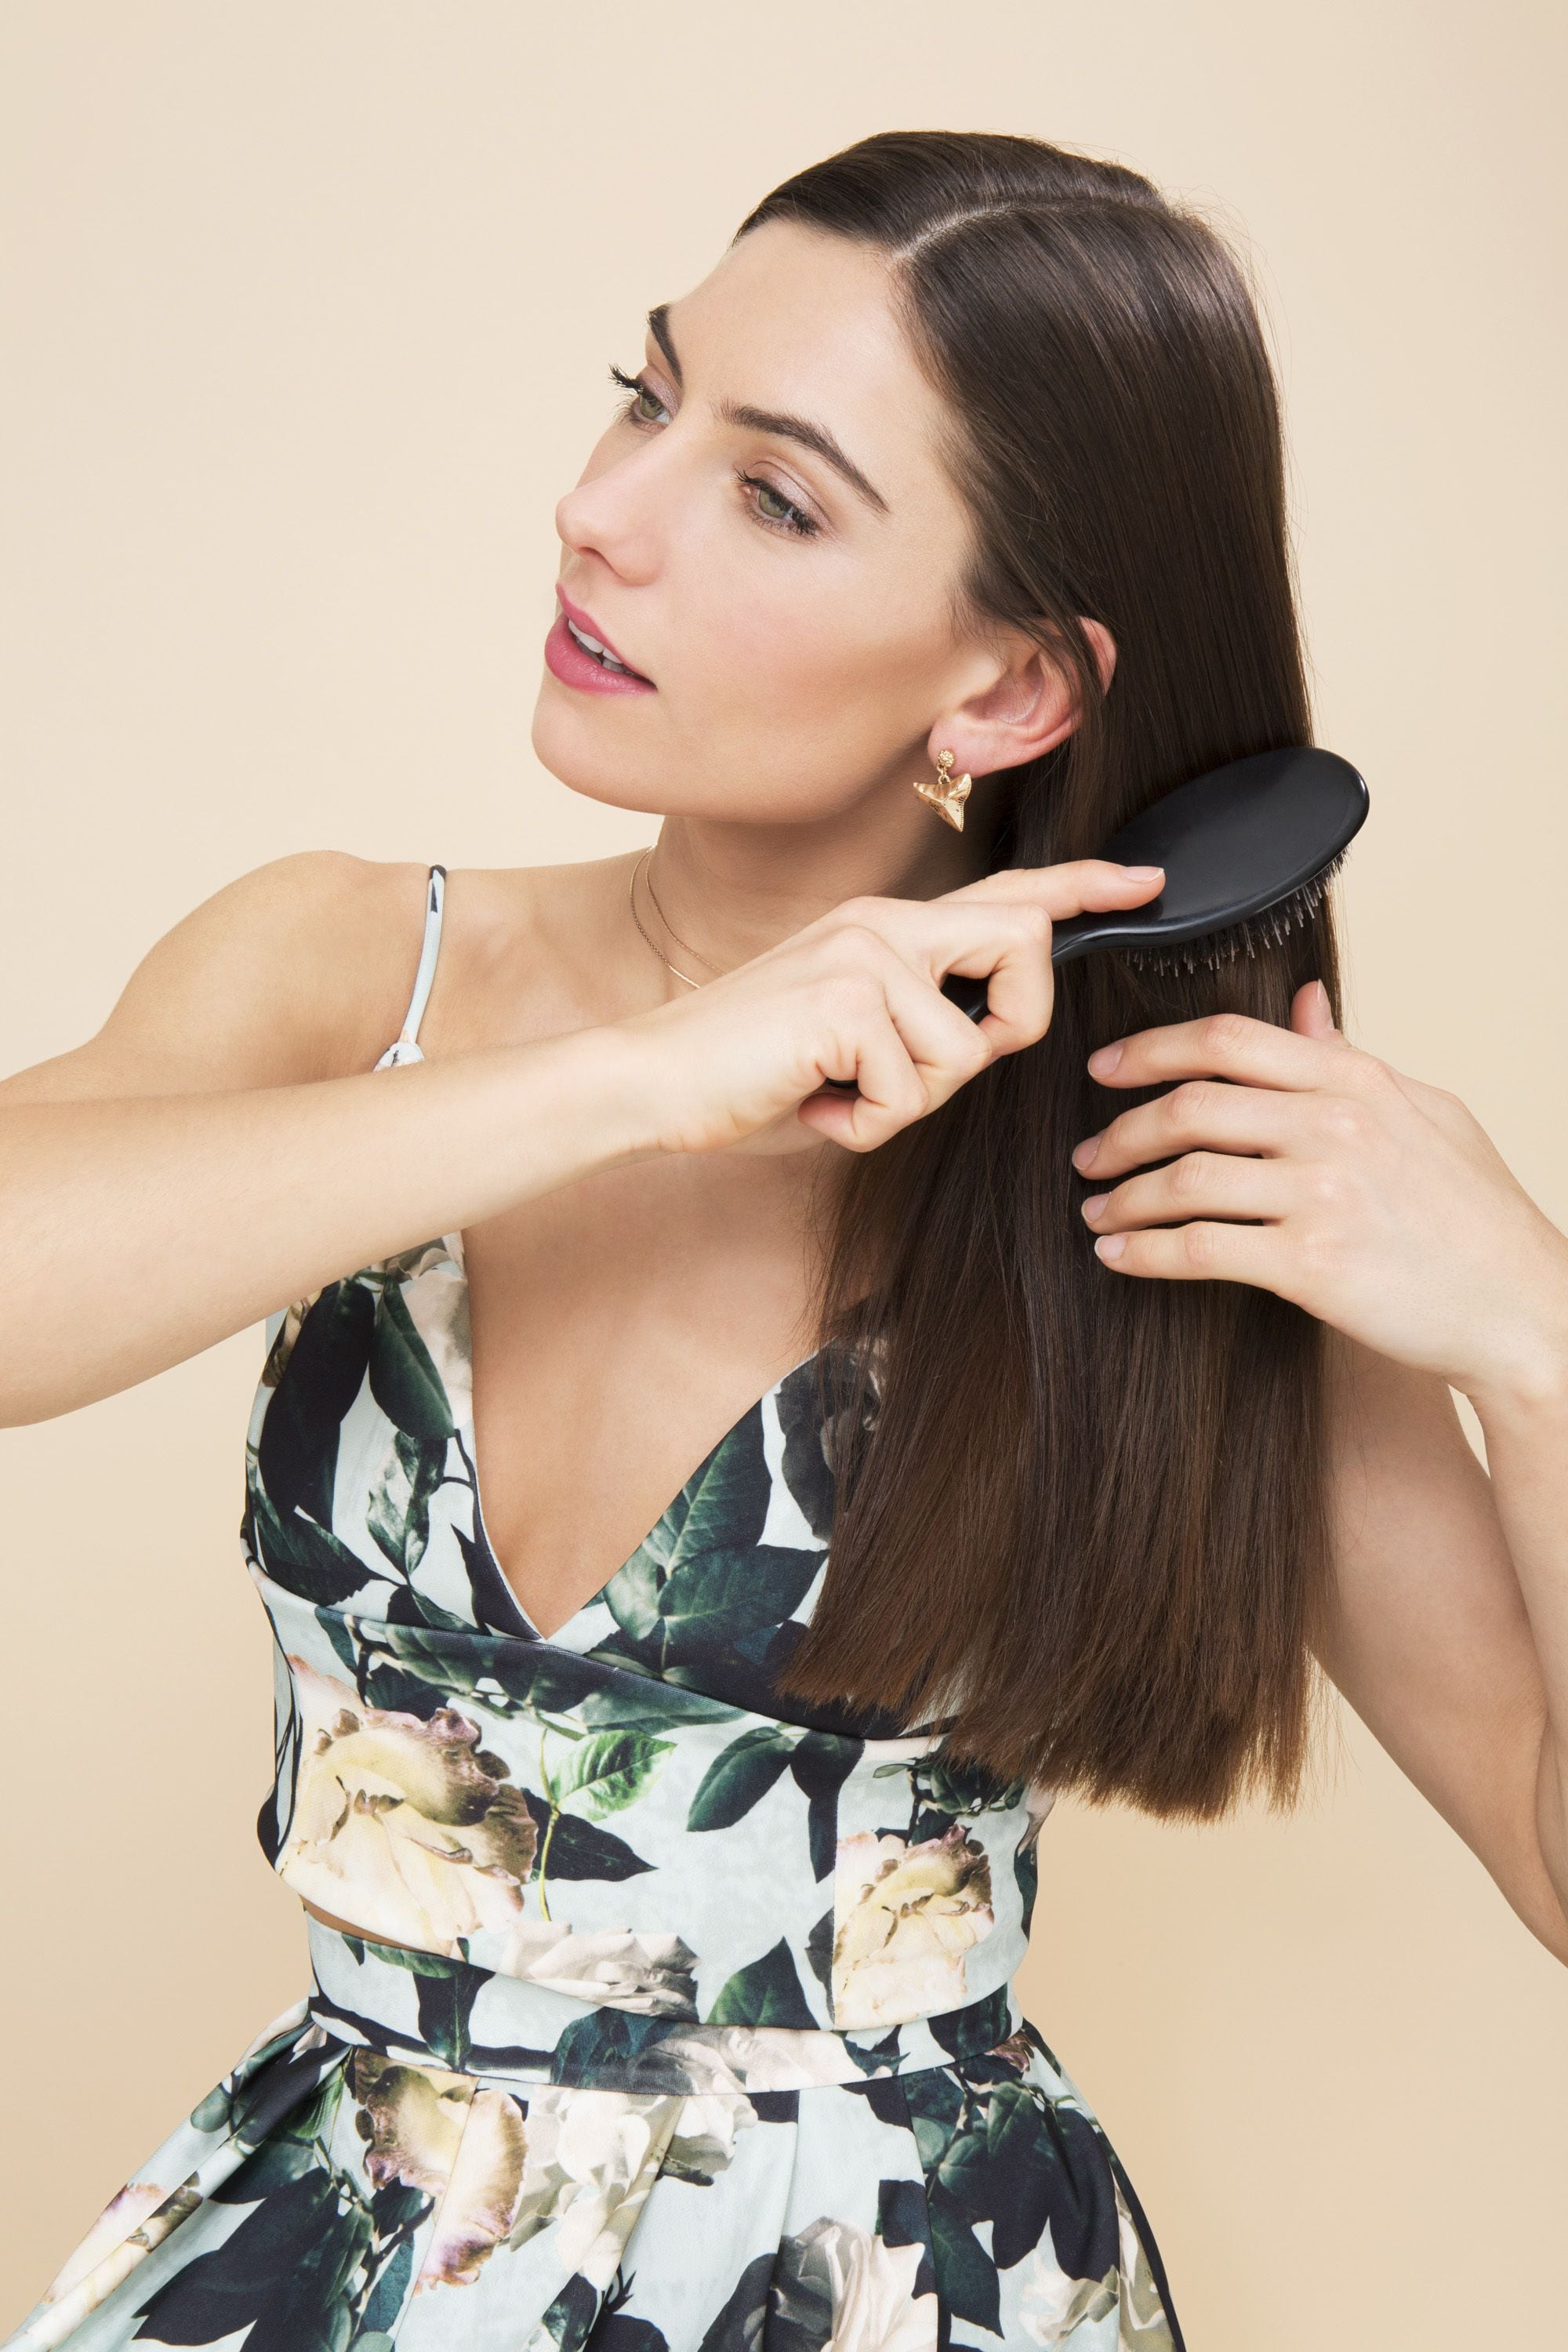 straightening hair without heat: model using hairspray on brush to smooth hair